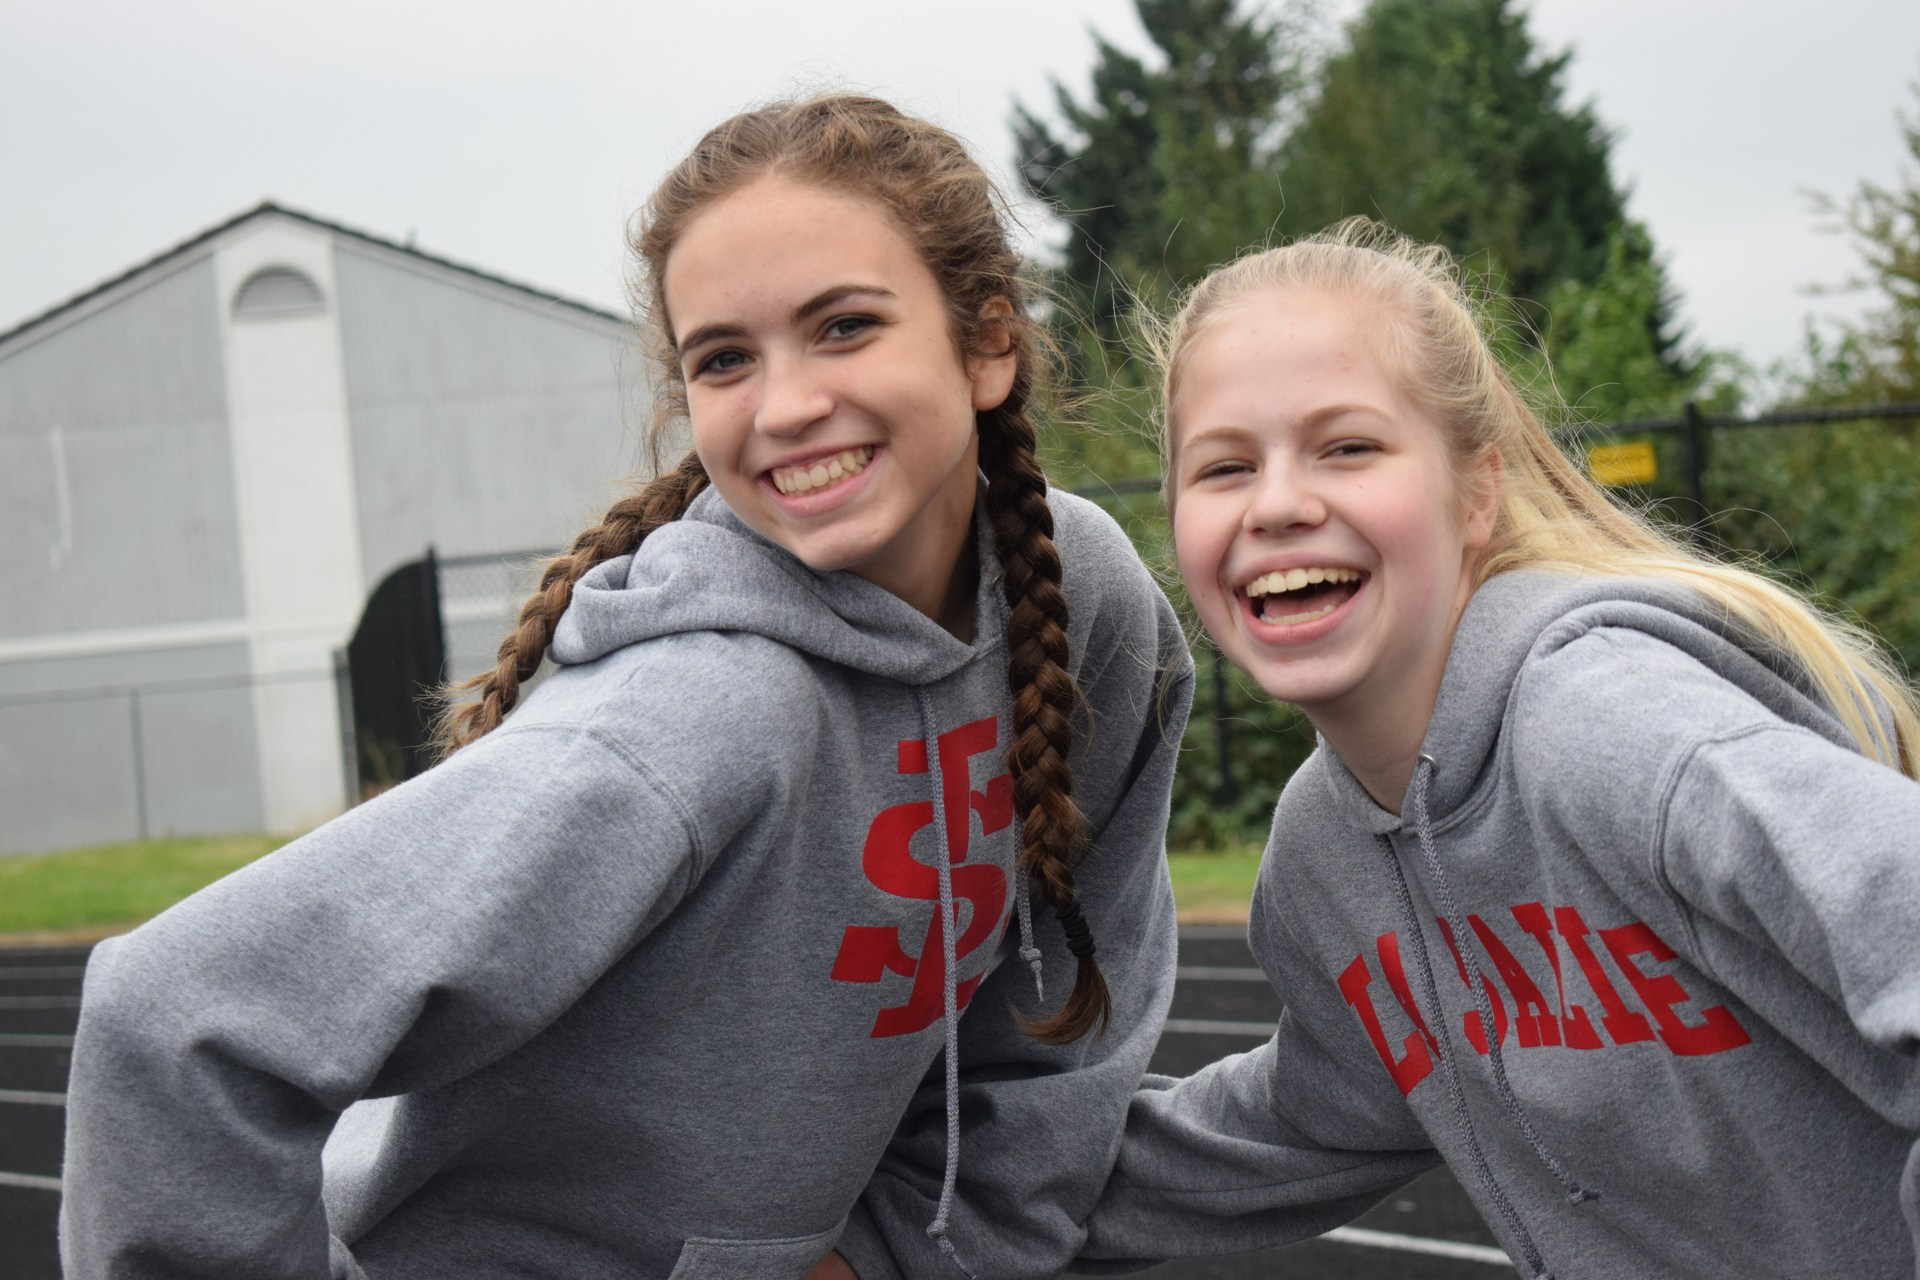 Two girls smiling while standing on the track.